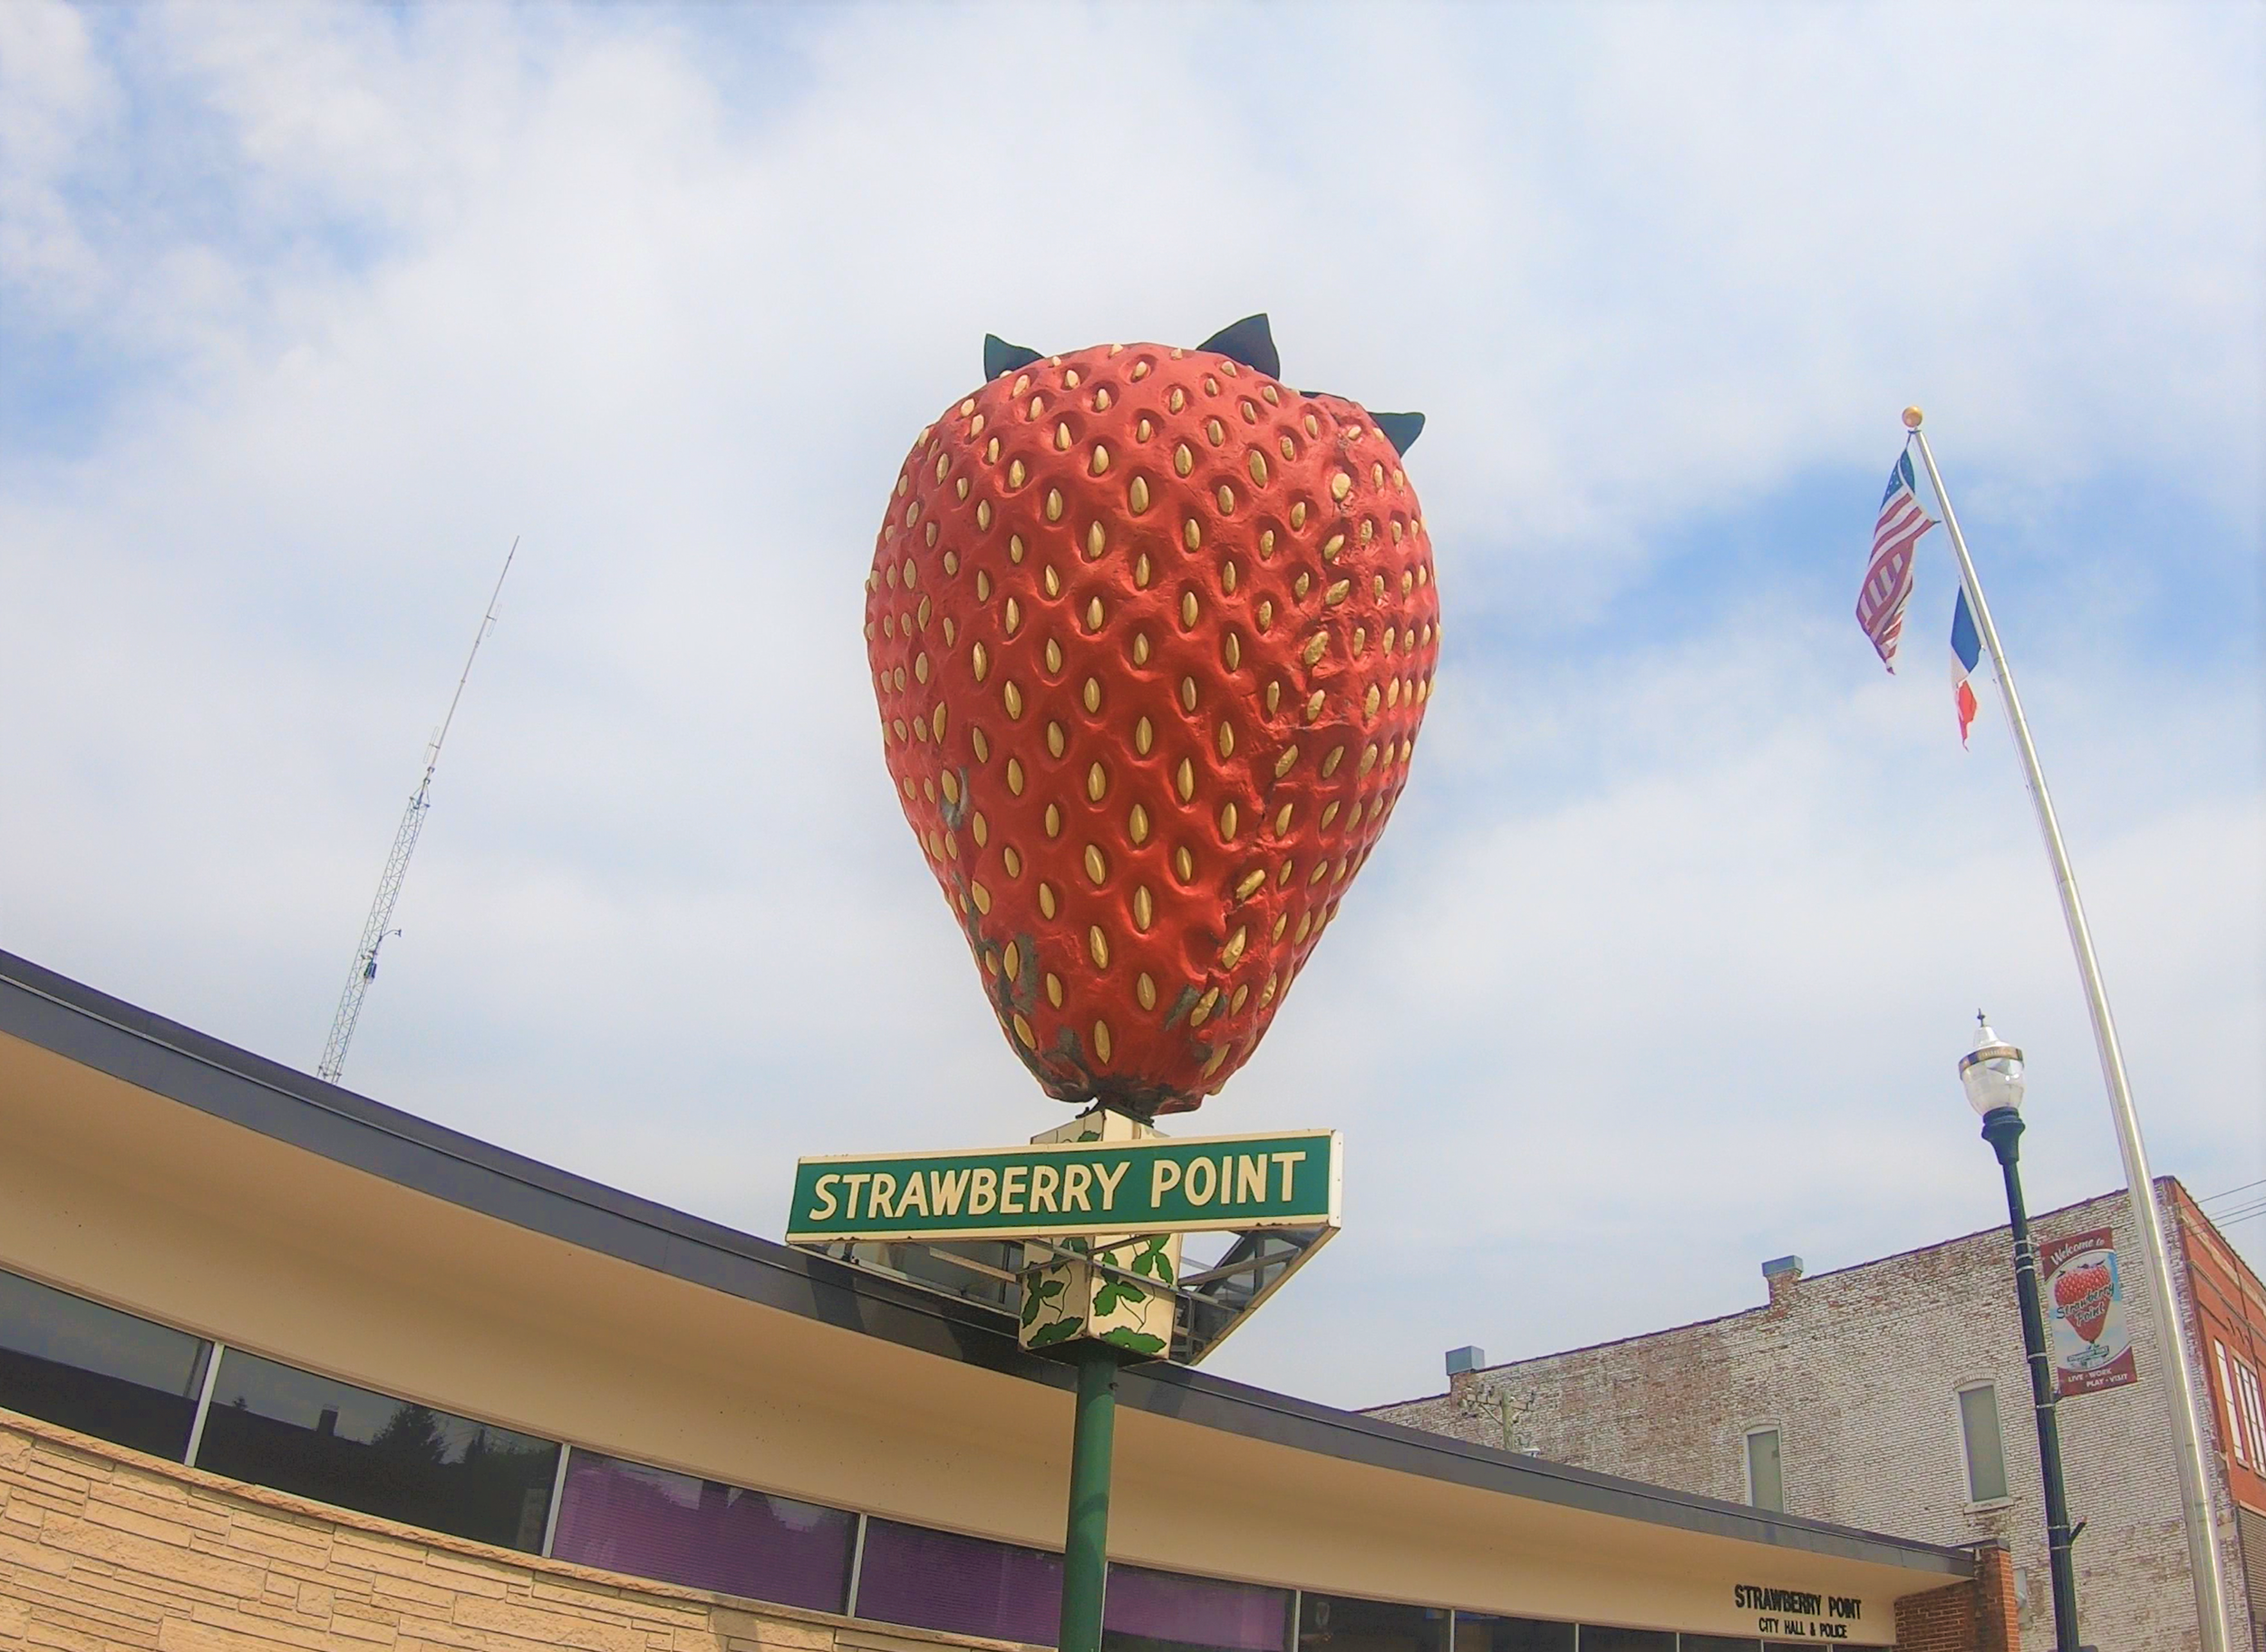 World's Largest Strawberry in Strawberry Point, Iowa